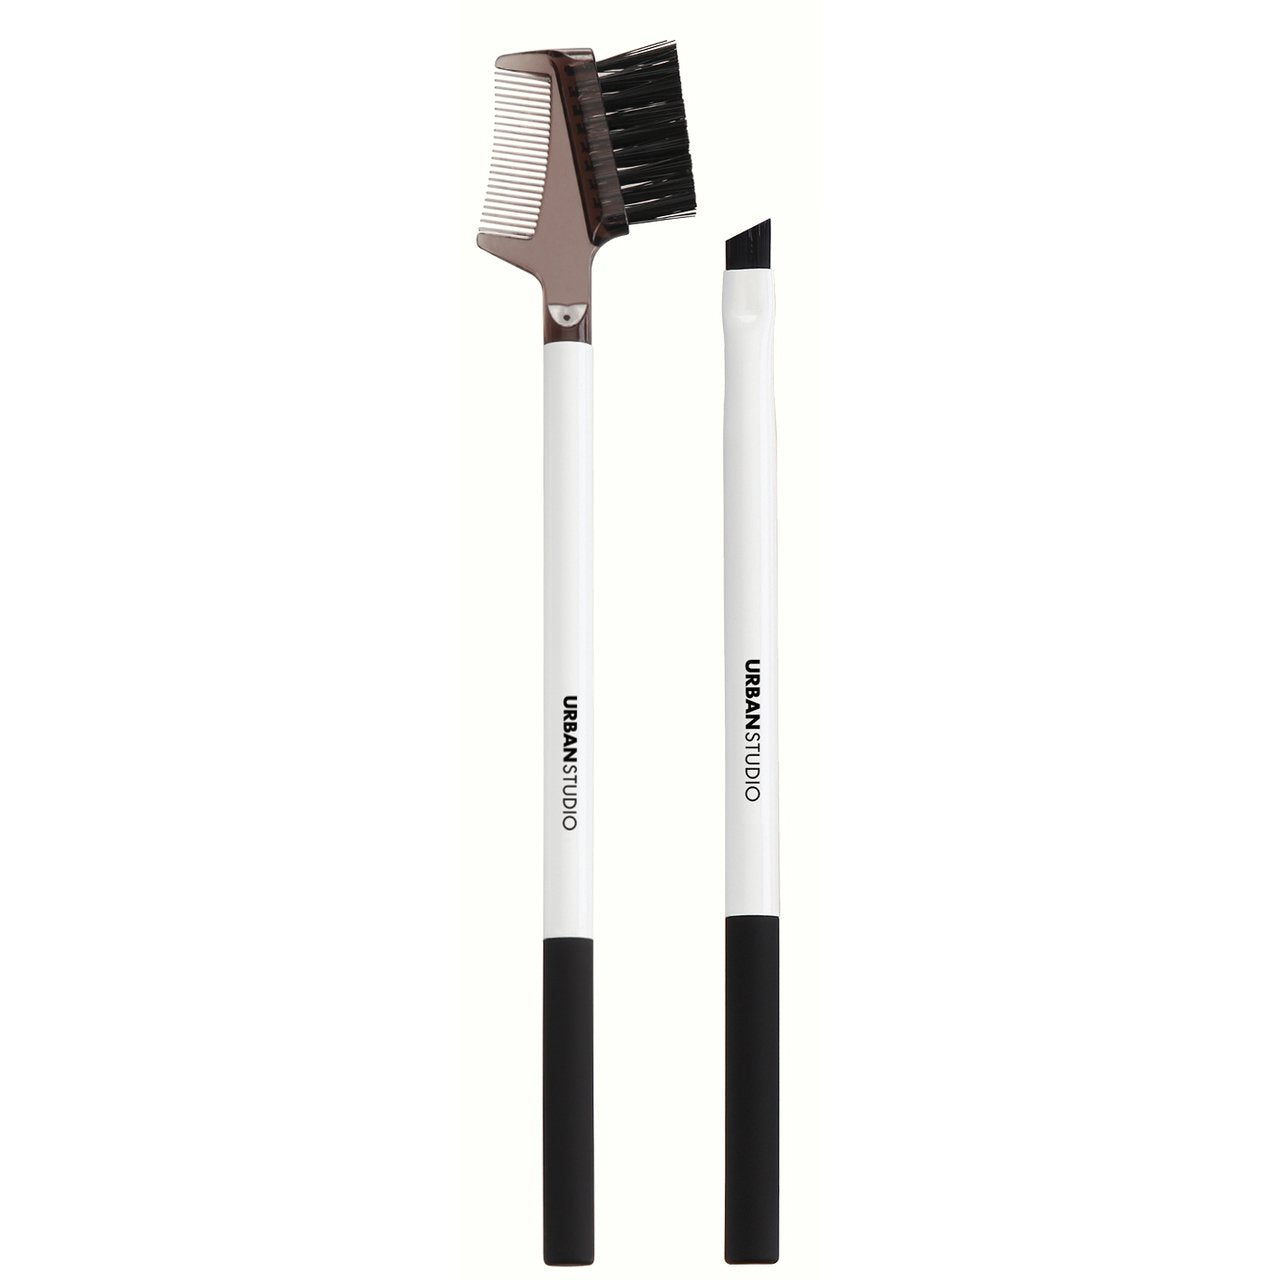 Urban Studio Eyebrow Brush Duo